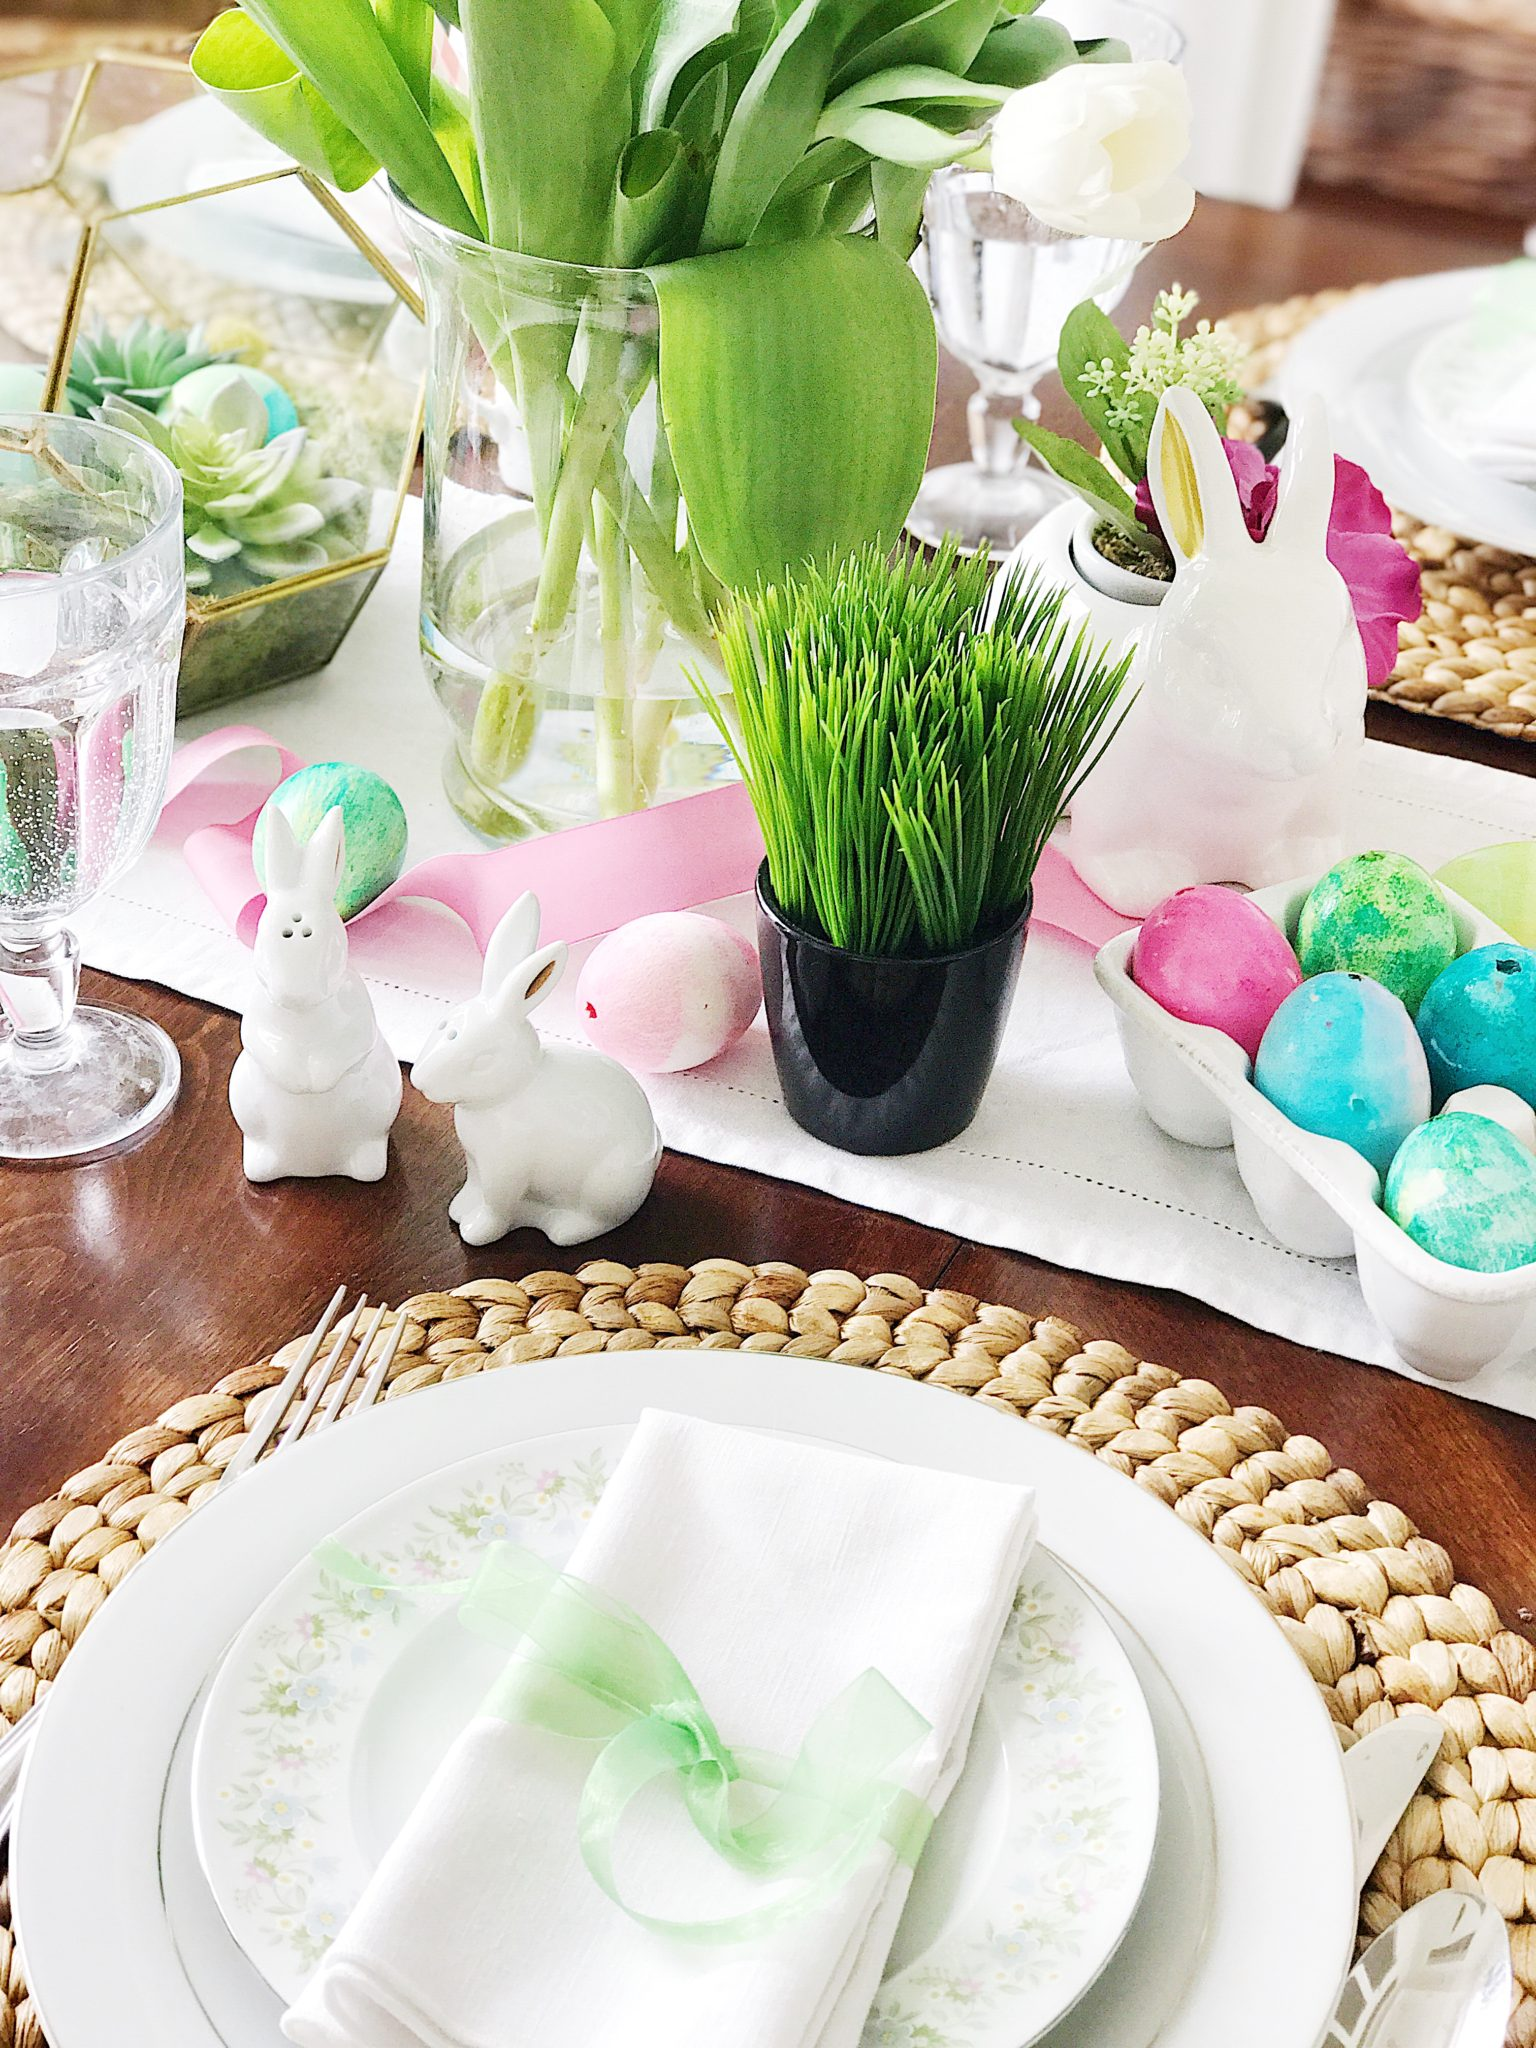 Simple Fresh and Pretty Easter and Springtime Table Setting Ideas : easter table setting ideas - pezcame.com